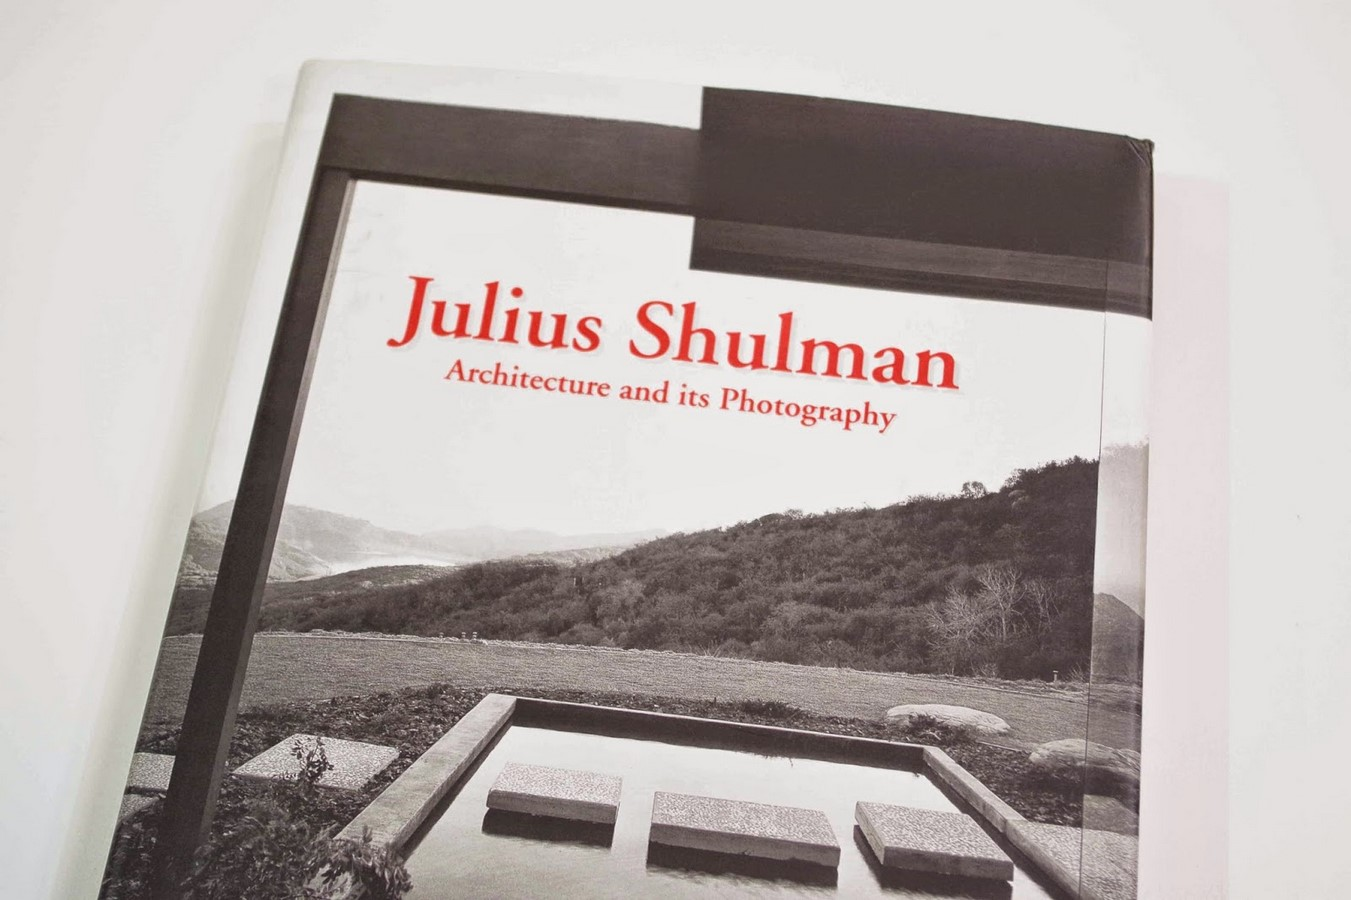 List of 10 books related to Architectural Photography - Sheet7